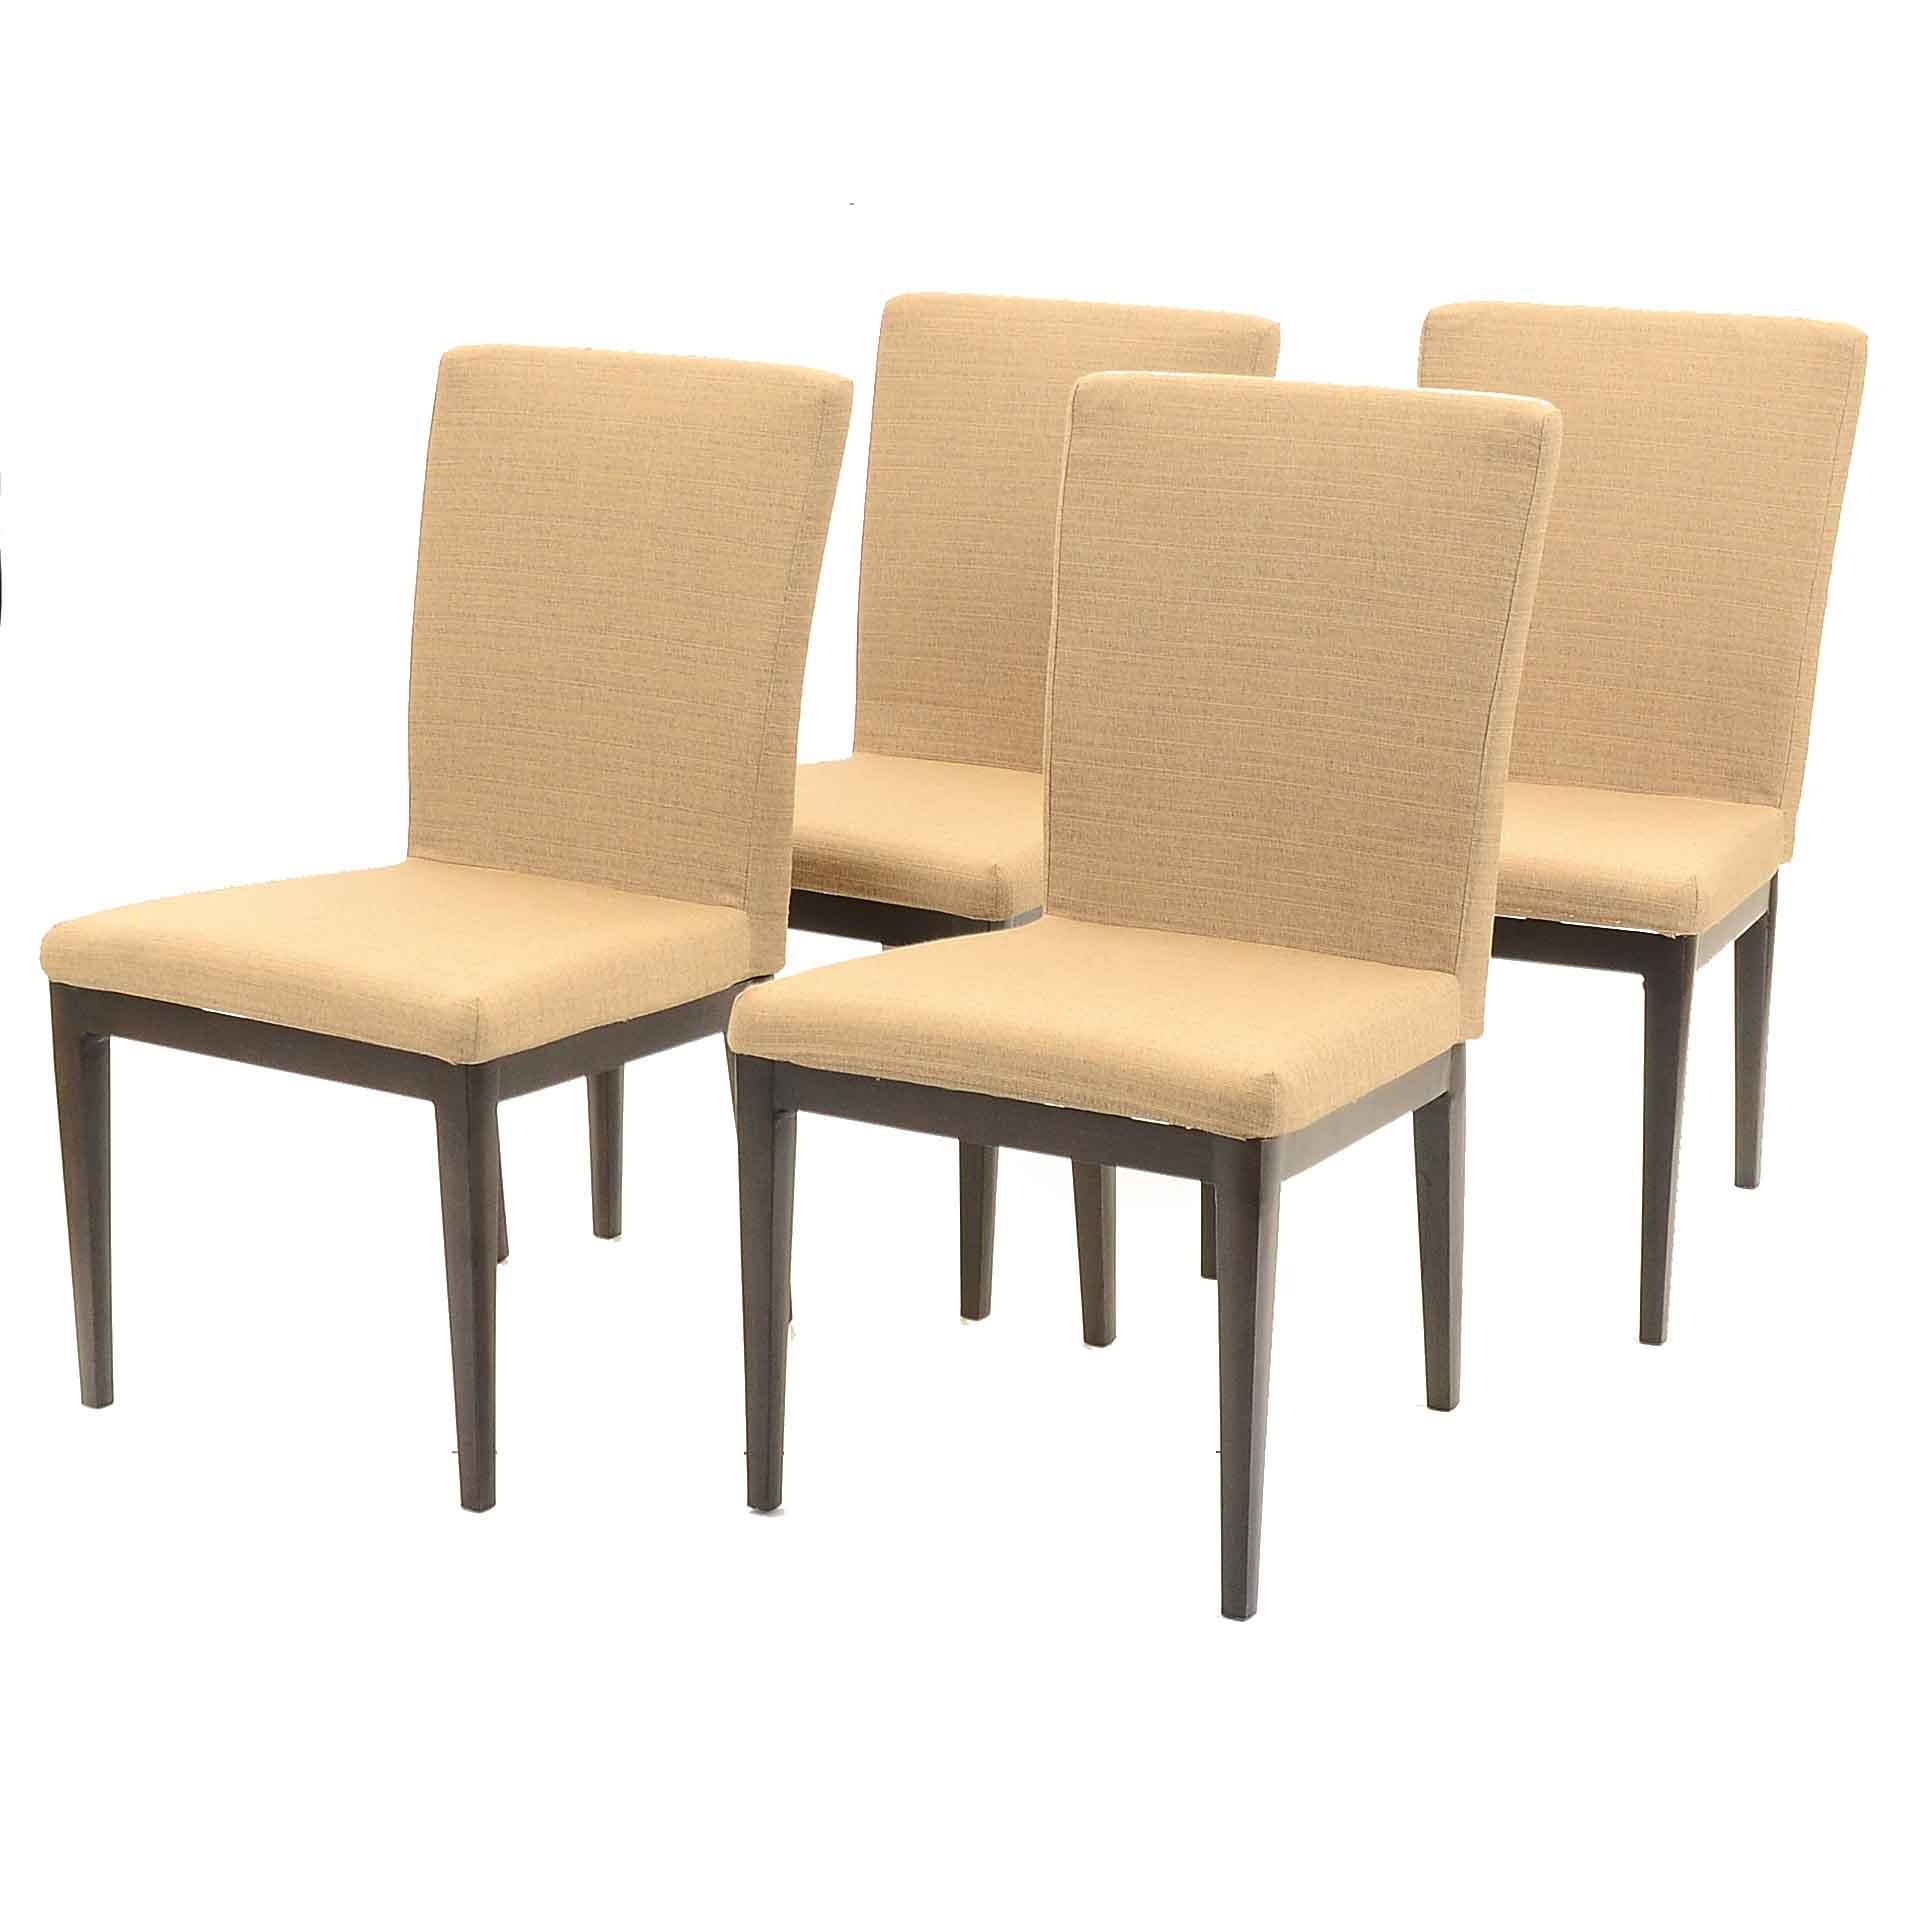 Collection of Four Sunbrella Outdoor chairs